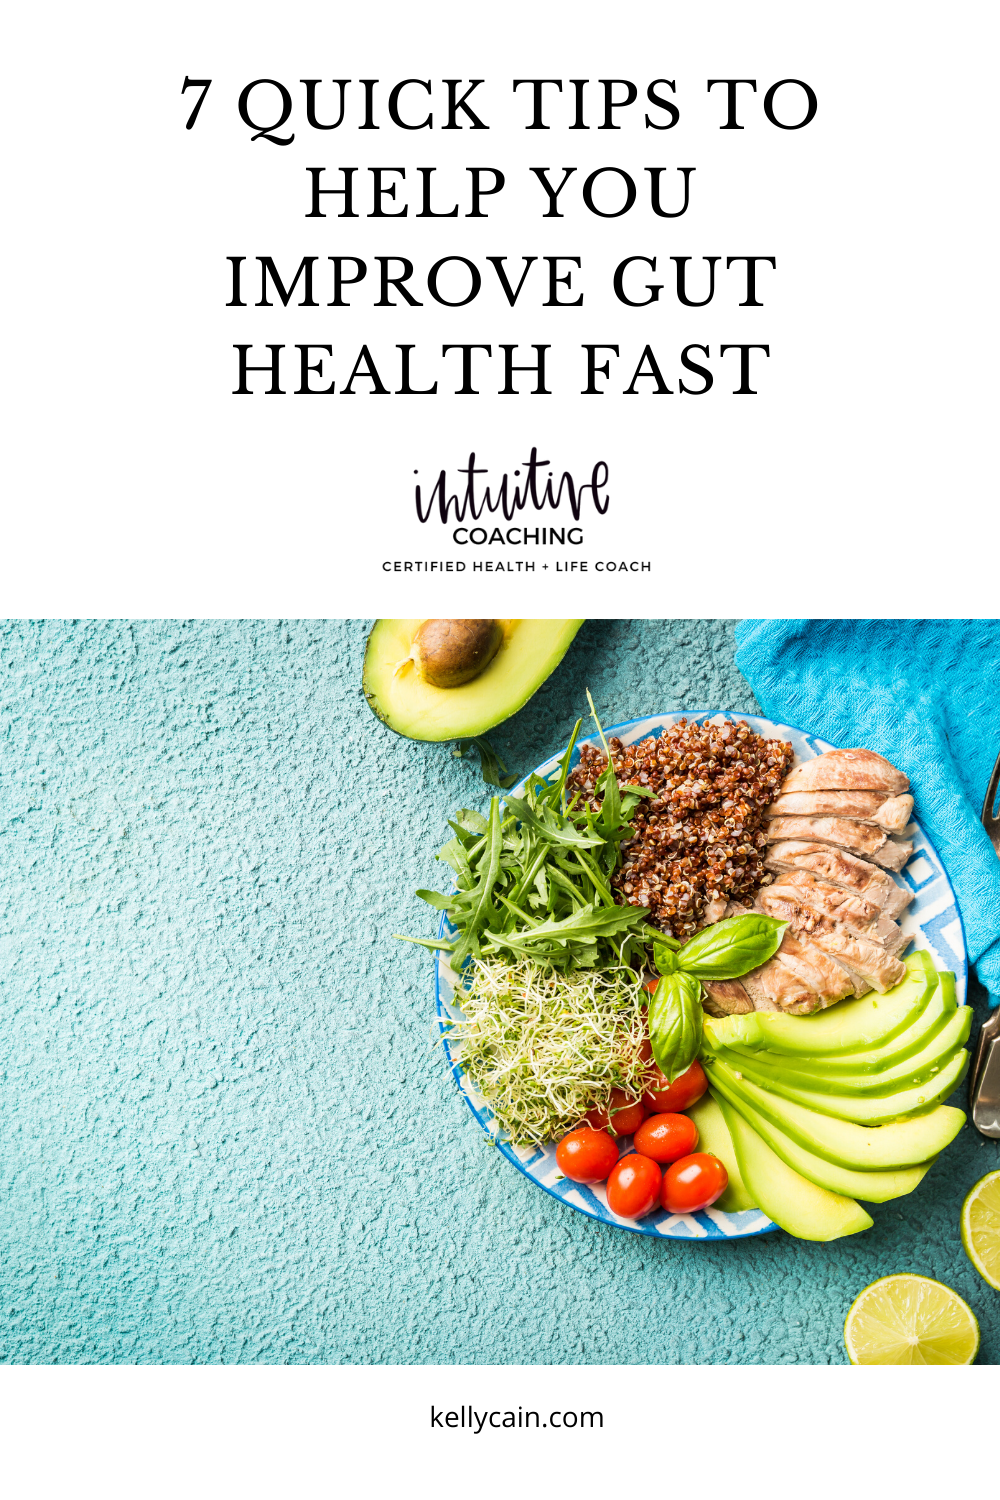 7 Quick Tips to Help You Improve Gut Health Fast